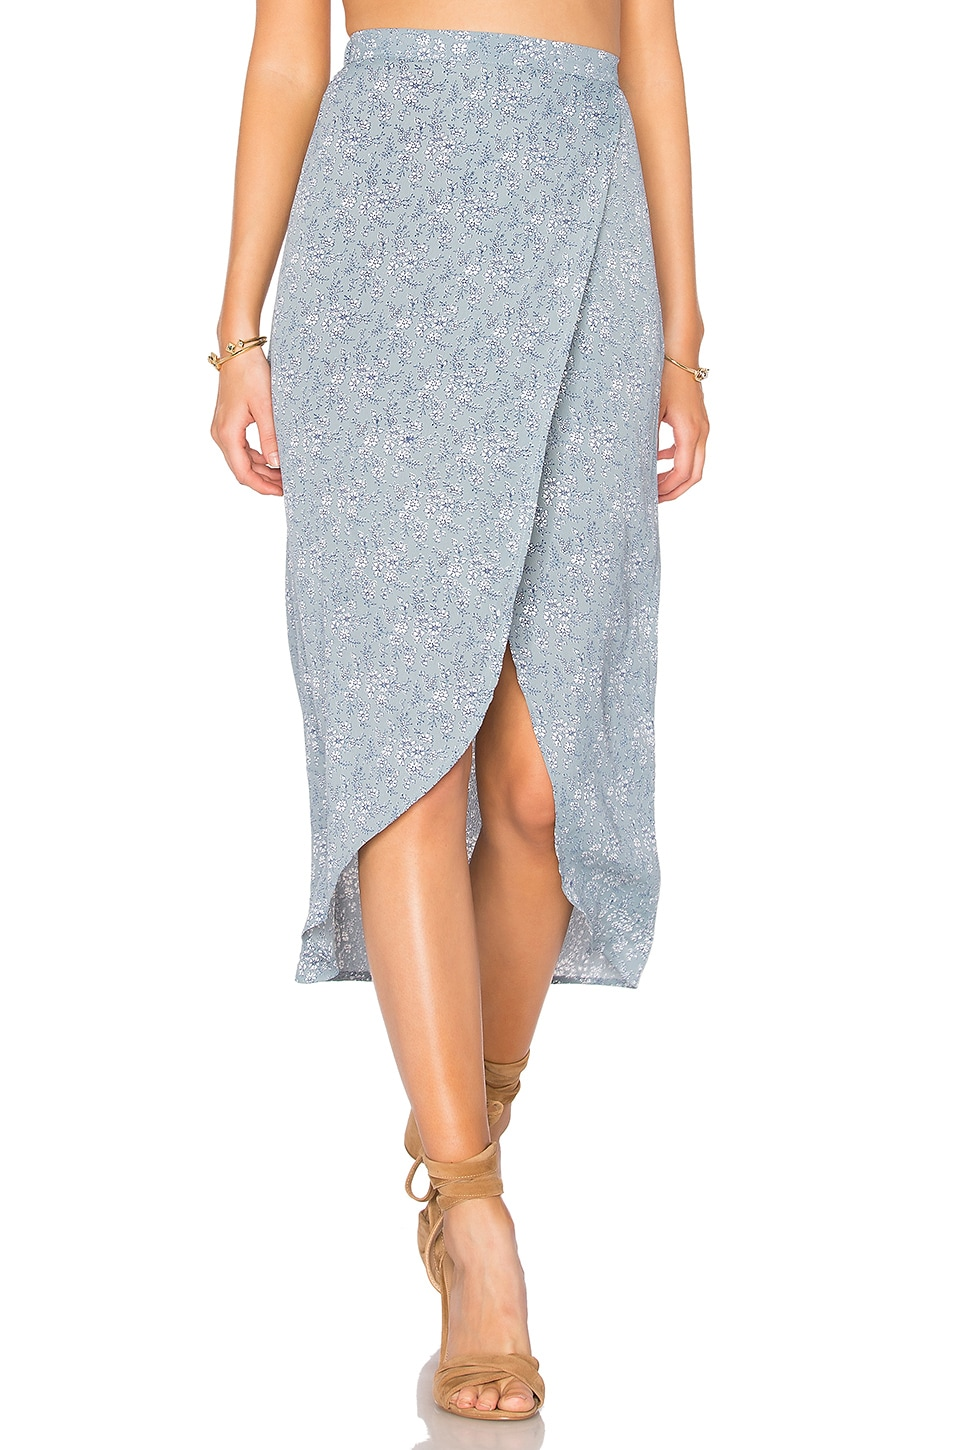 Lisakai Maxi Skirt in Blue